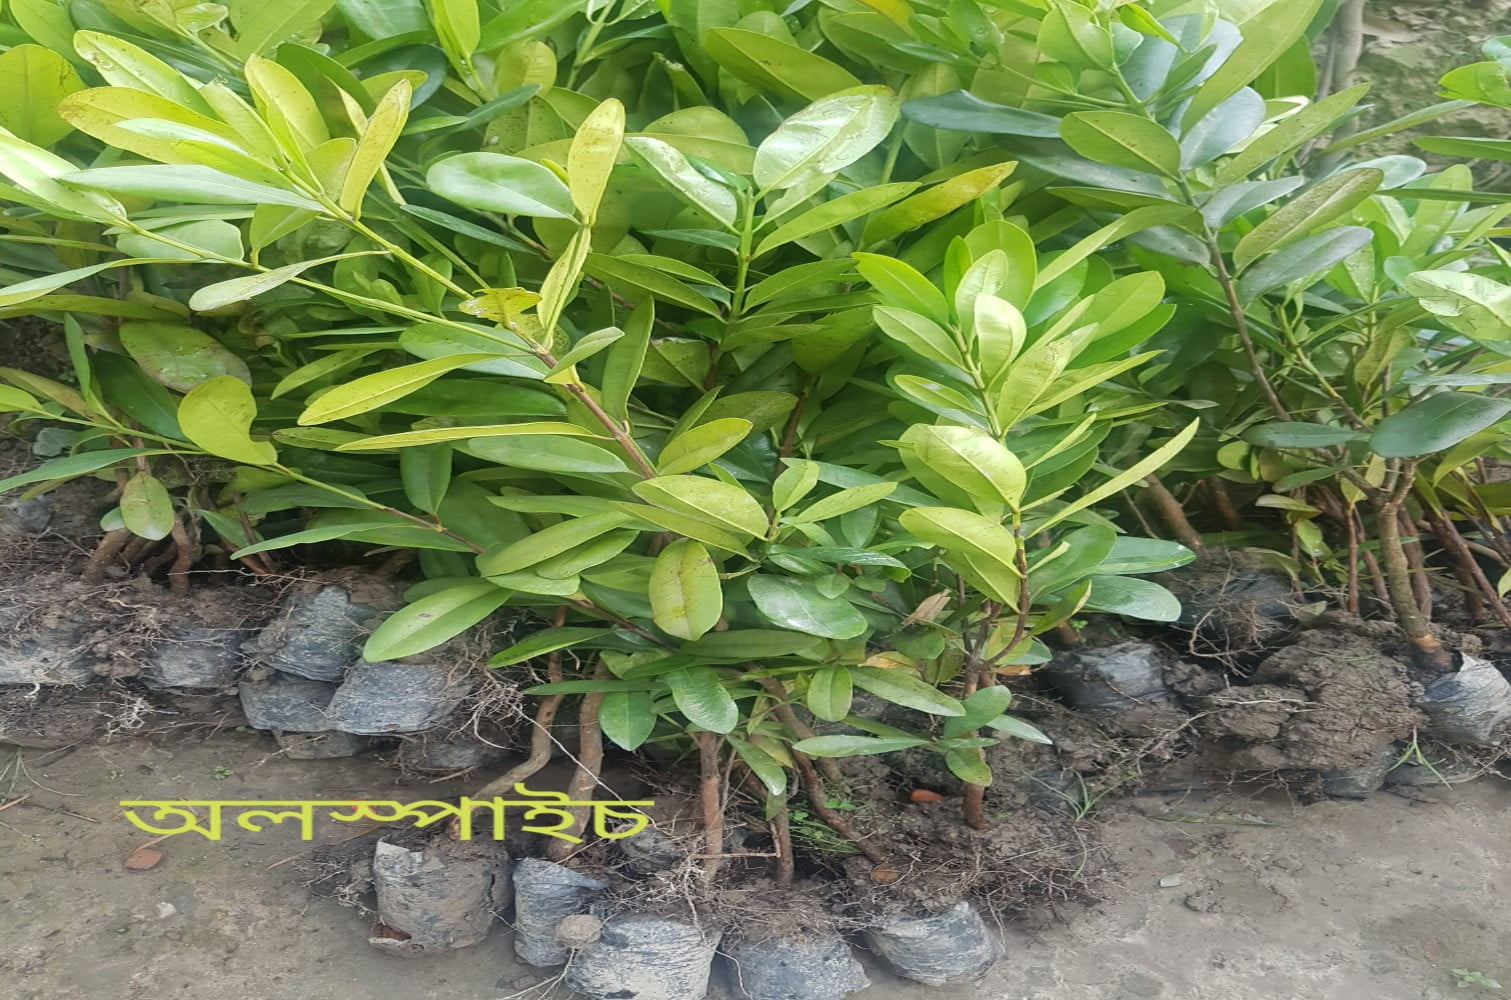 All Spice Plant For Sale in Bangladesh - GETSVIEW Market (1)